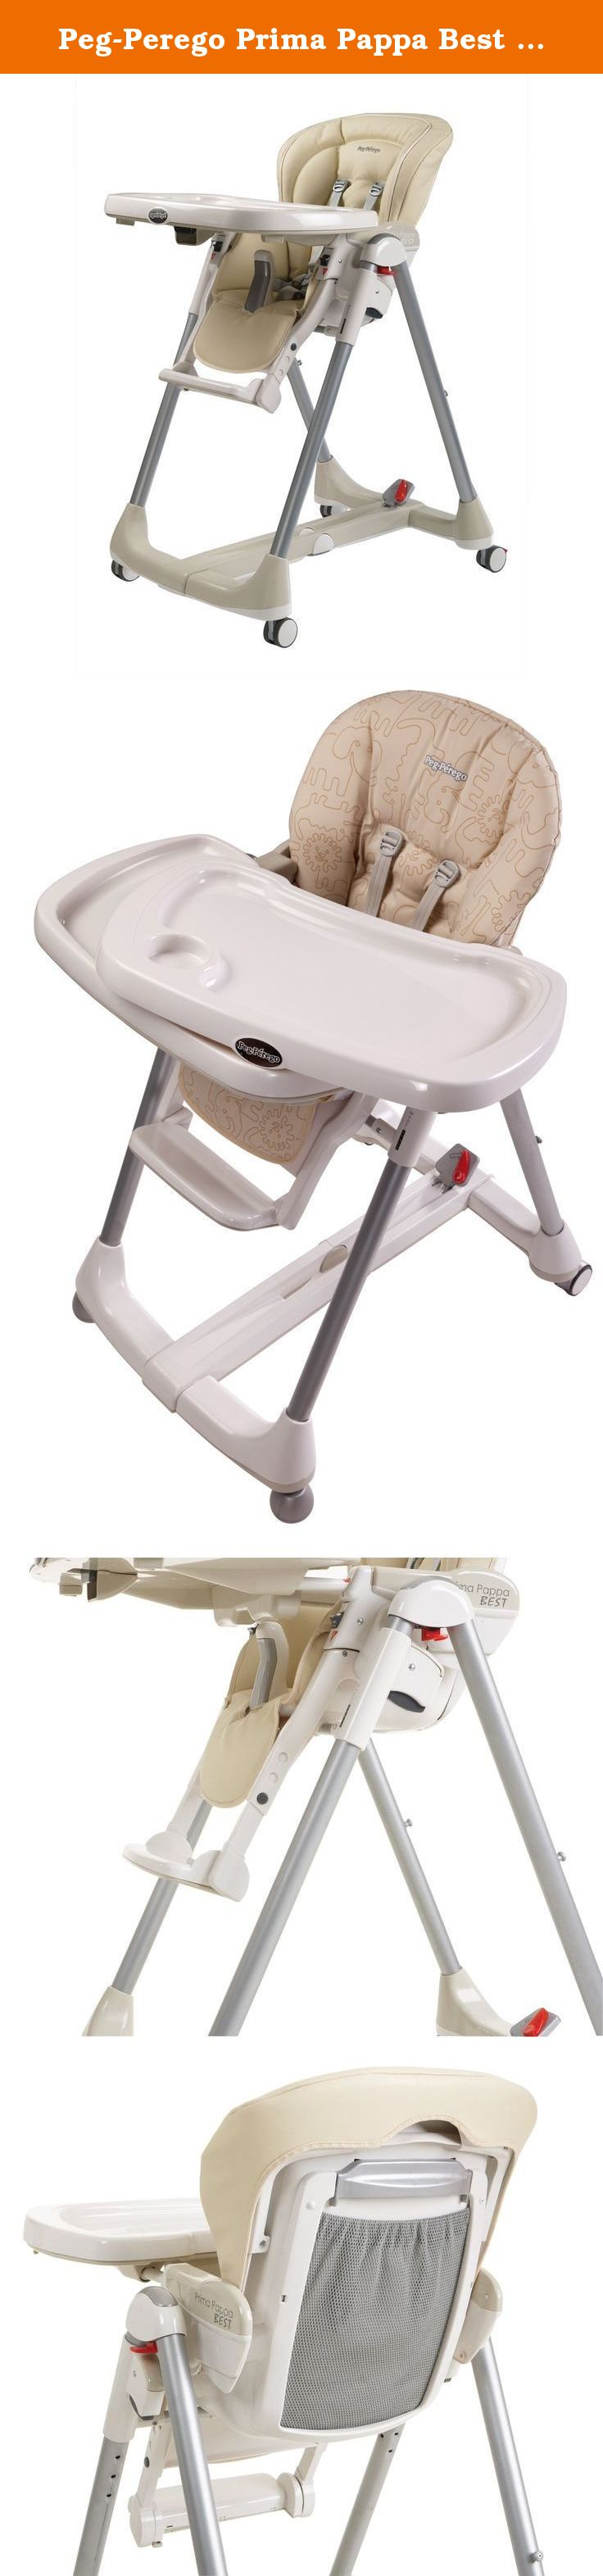 peg perego prima pappa best high chair paloma it doesn t get any rh pinterest at